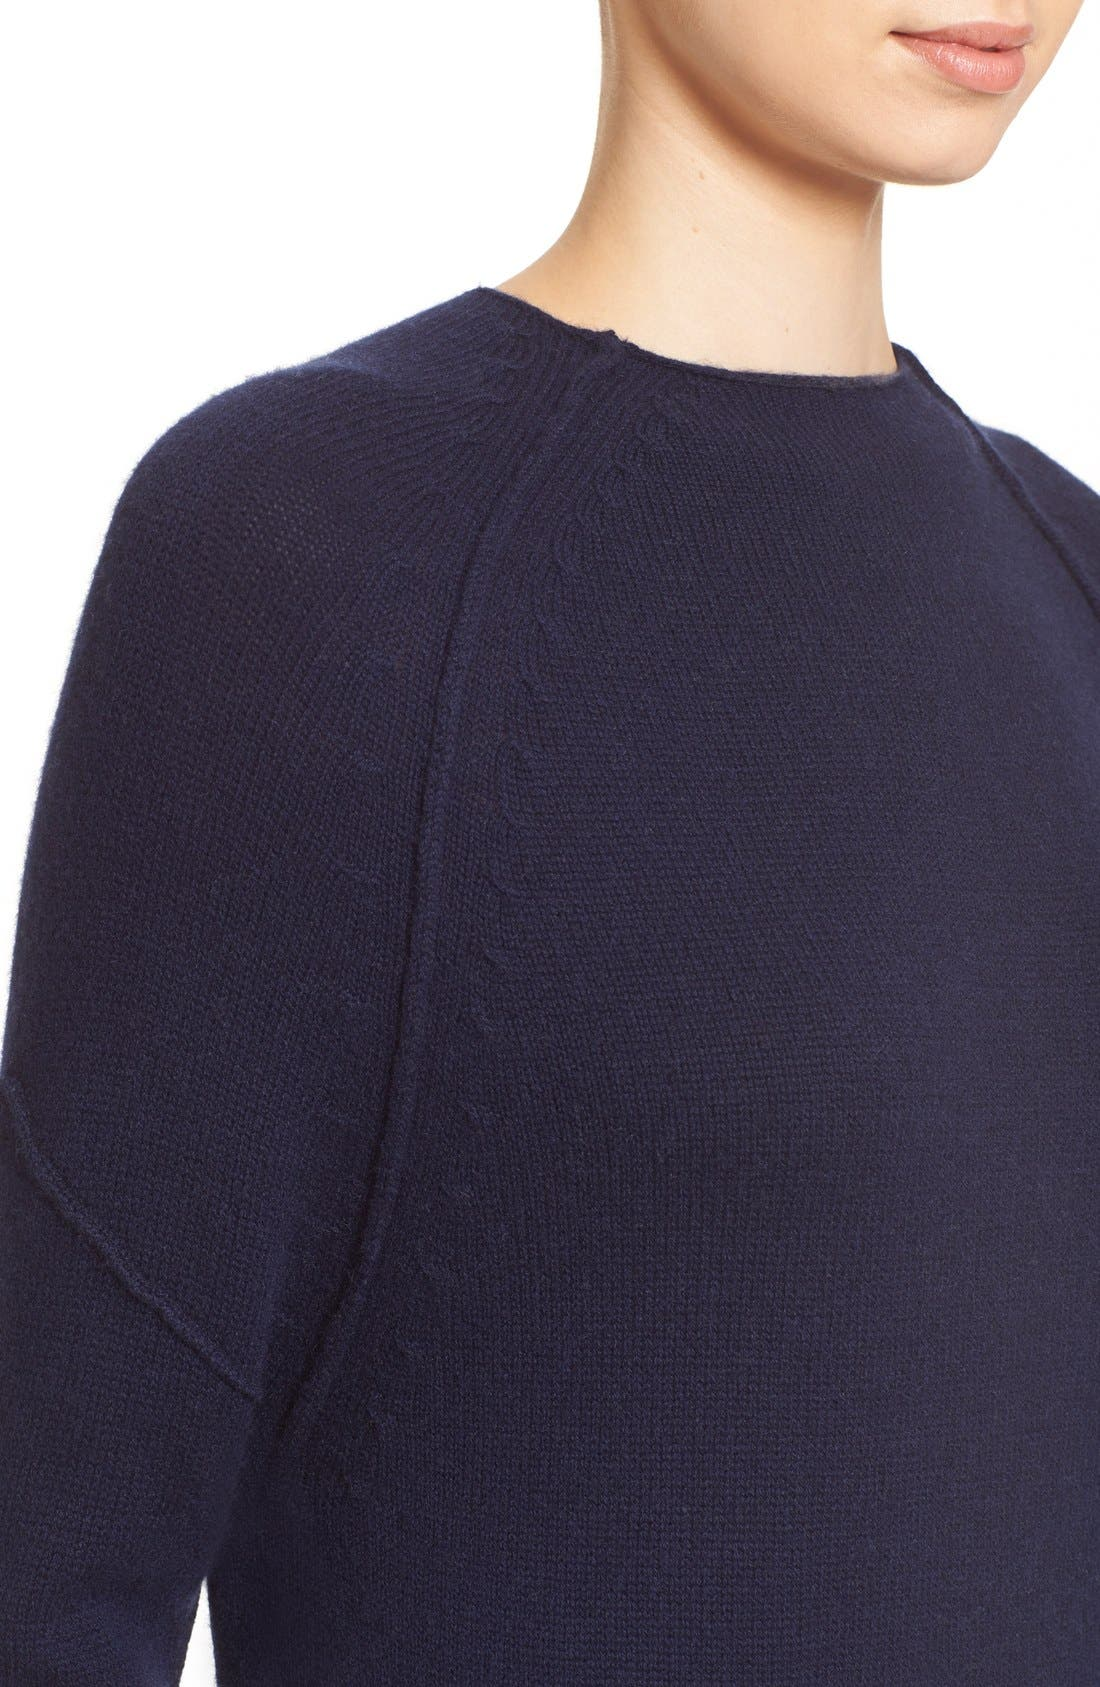 'Looker' Layered Wool & Cashmere Dress,                             Alternate thumbnail 4, color,                             414